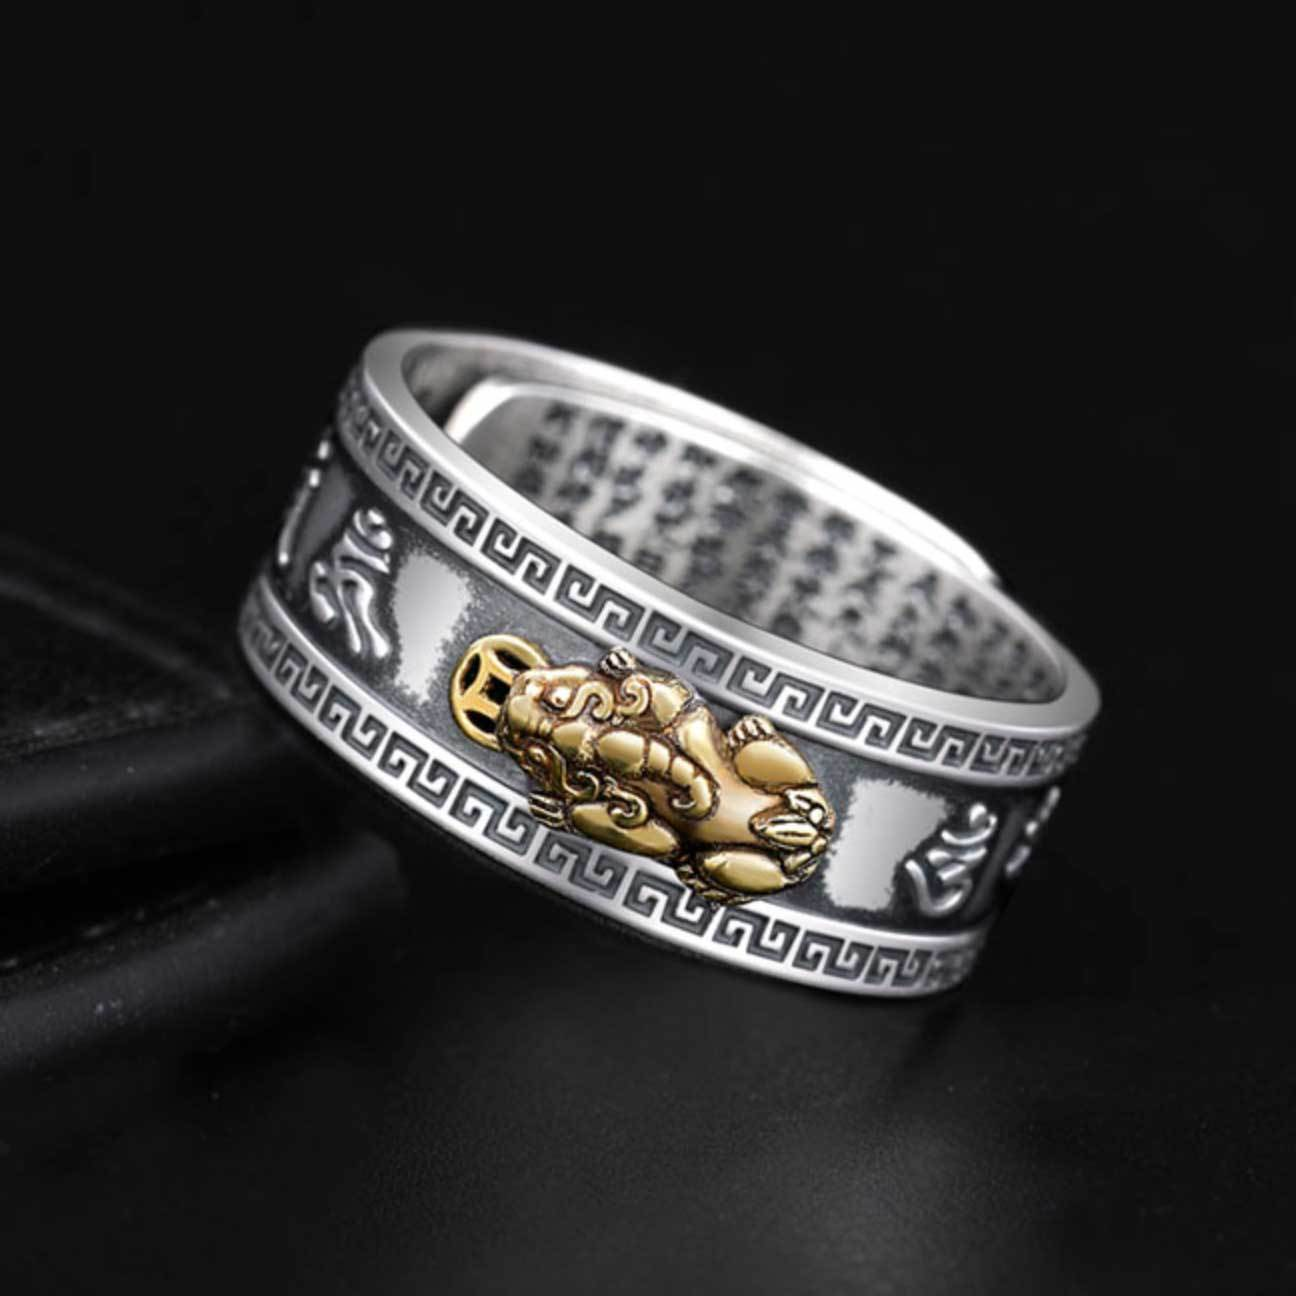 Feng Shui Pixiu Mantra Wealth & Protection Ring - 1